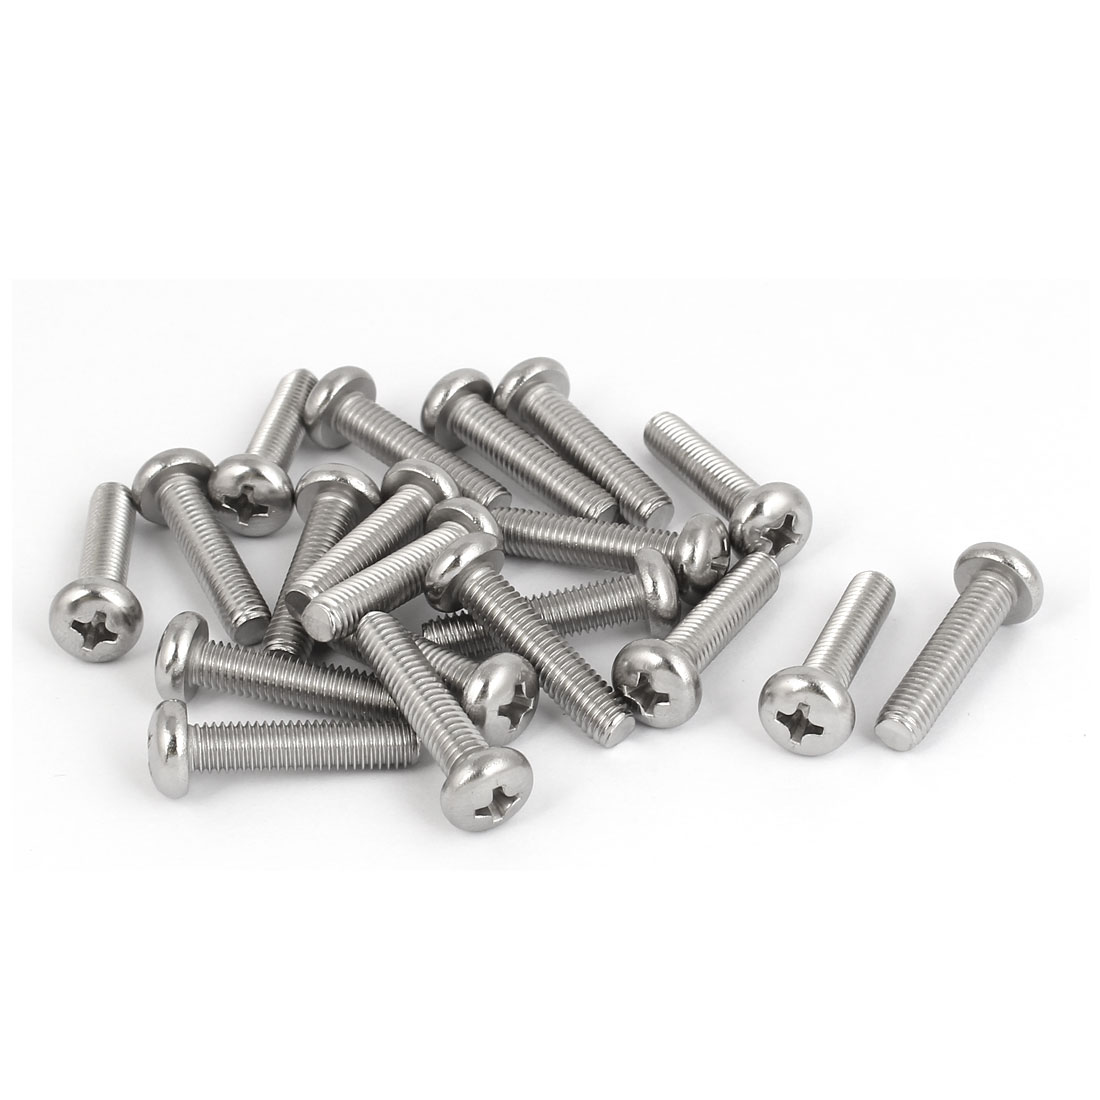 20 Pcs M5x22mm 316 Stainless Steel Metric Phillips Pan Head Machine Screws Bolts